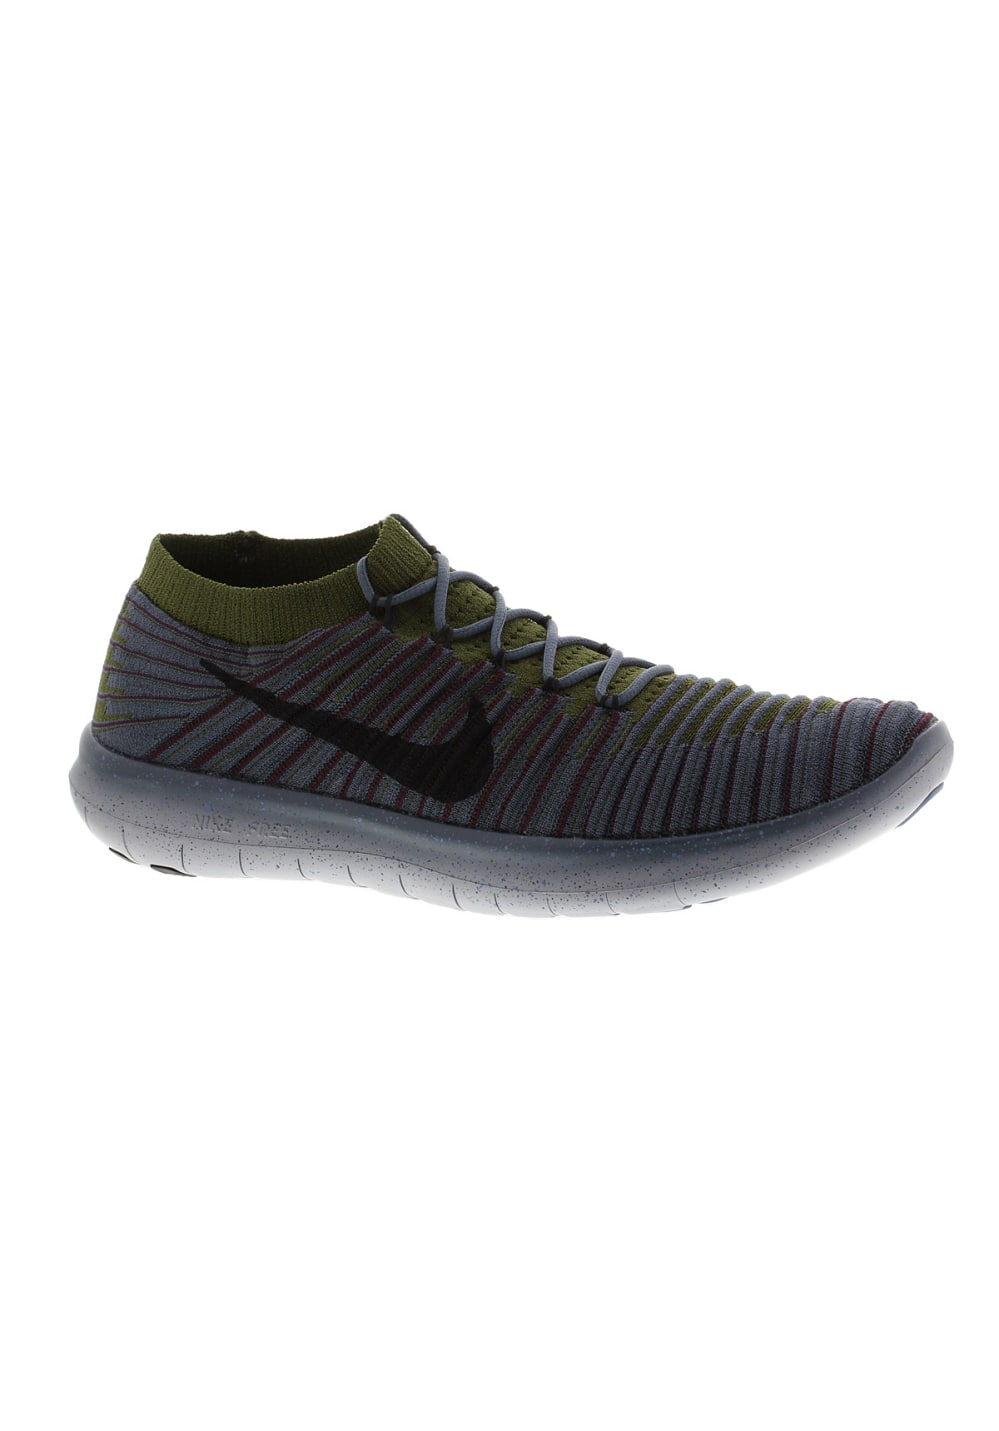 super populaire c4327 77048 Nike Free RN Motion Flyknit - Chaussures running pour Homme - Noir